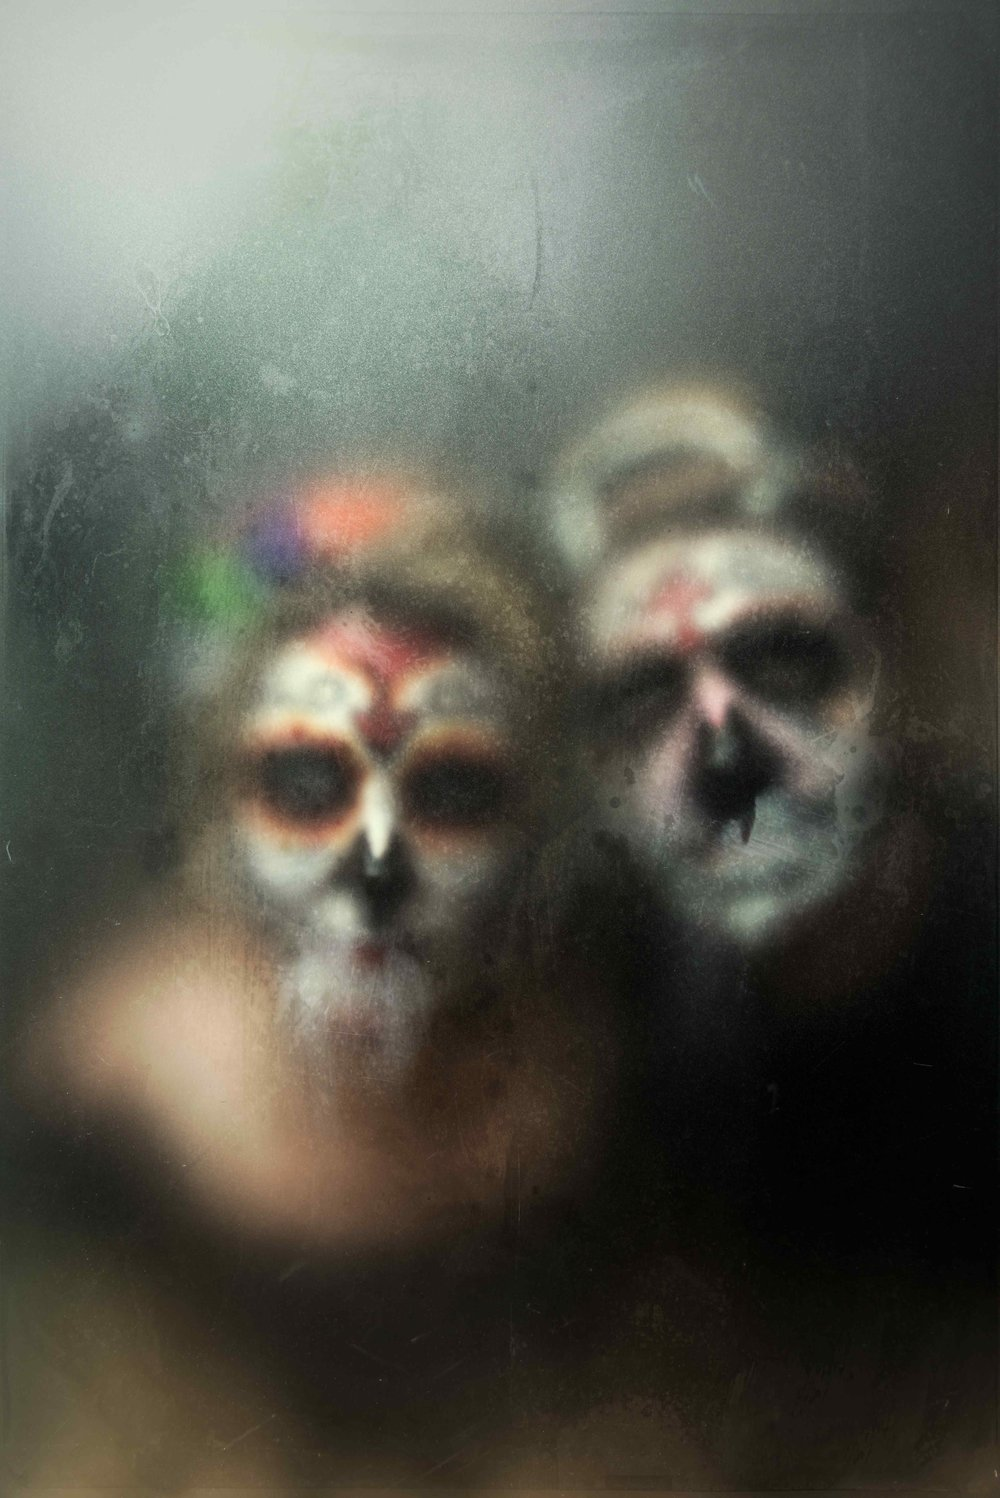 austin-trigg-halloween-spooky-portraits-Día-de-Muertos-lighting-project-personal-scary-makeup-costume-old-fashion-style-fog-glass.jpg